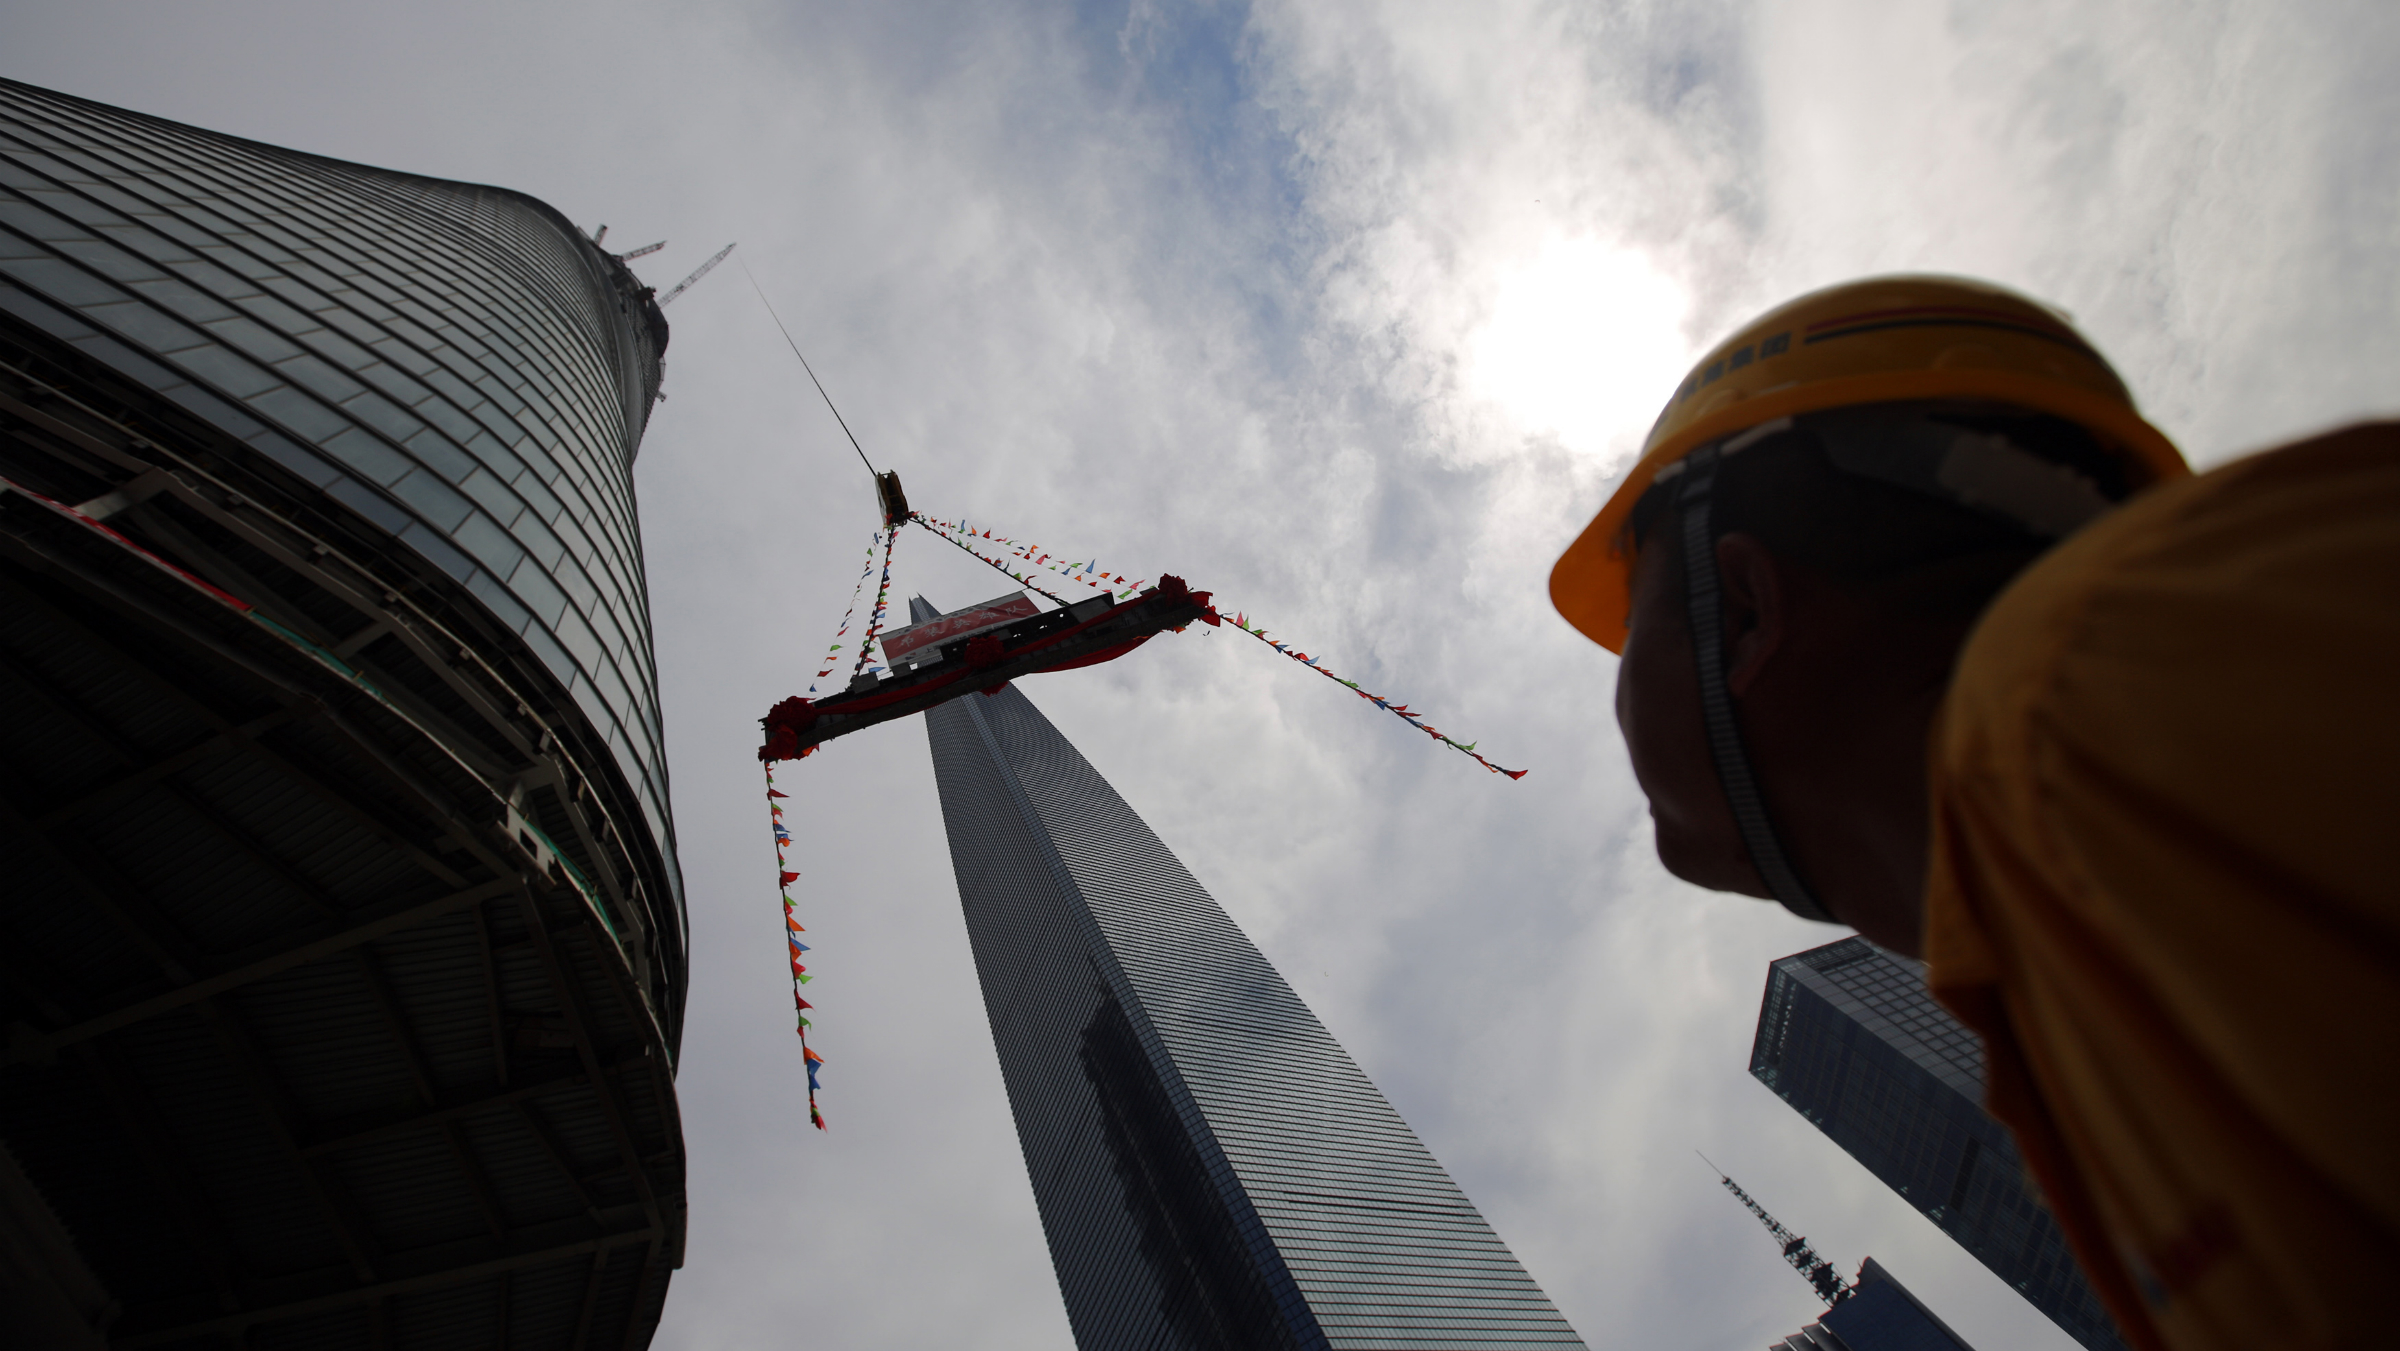 A worker looks a piece of steel lifted by a crane during the topping out ceremony at the Shanghai Tower, which is undergoing construction, at the financial district of Pudong in Shanghai August 3, 2013. The 632 metres (2,073 ft) high Shanghai Tower, which is scheduled to finish construction by the end of 2014, will be the tallest skyscraper in China and the second tallest in the world. REUTERS/Carlos Barria